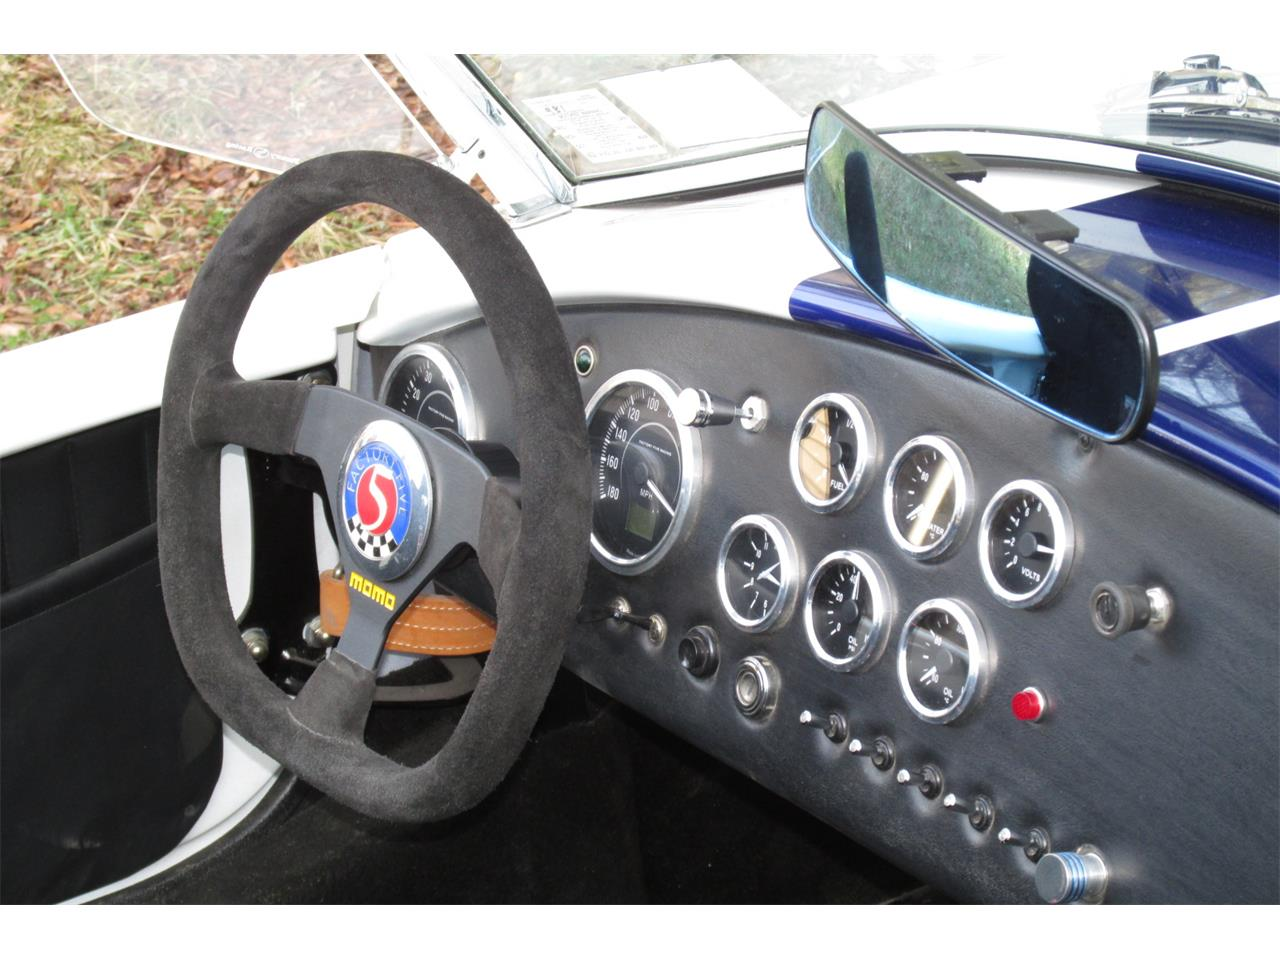 Large Picture of Classic '65 Cobra Replica located in New York - $49,000.00 - N693